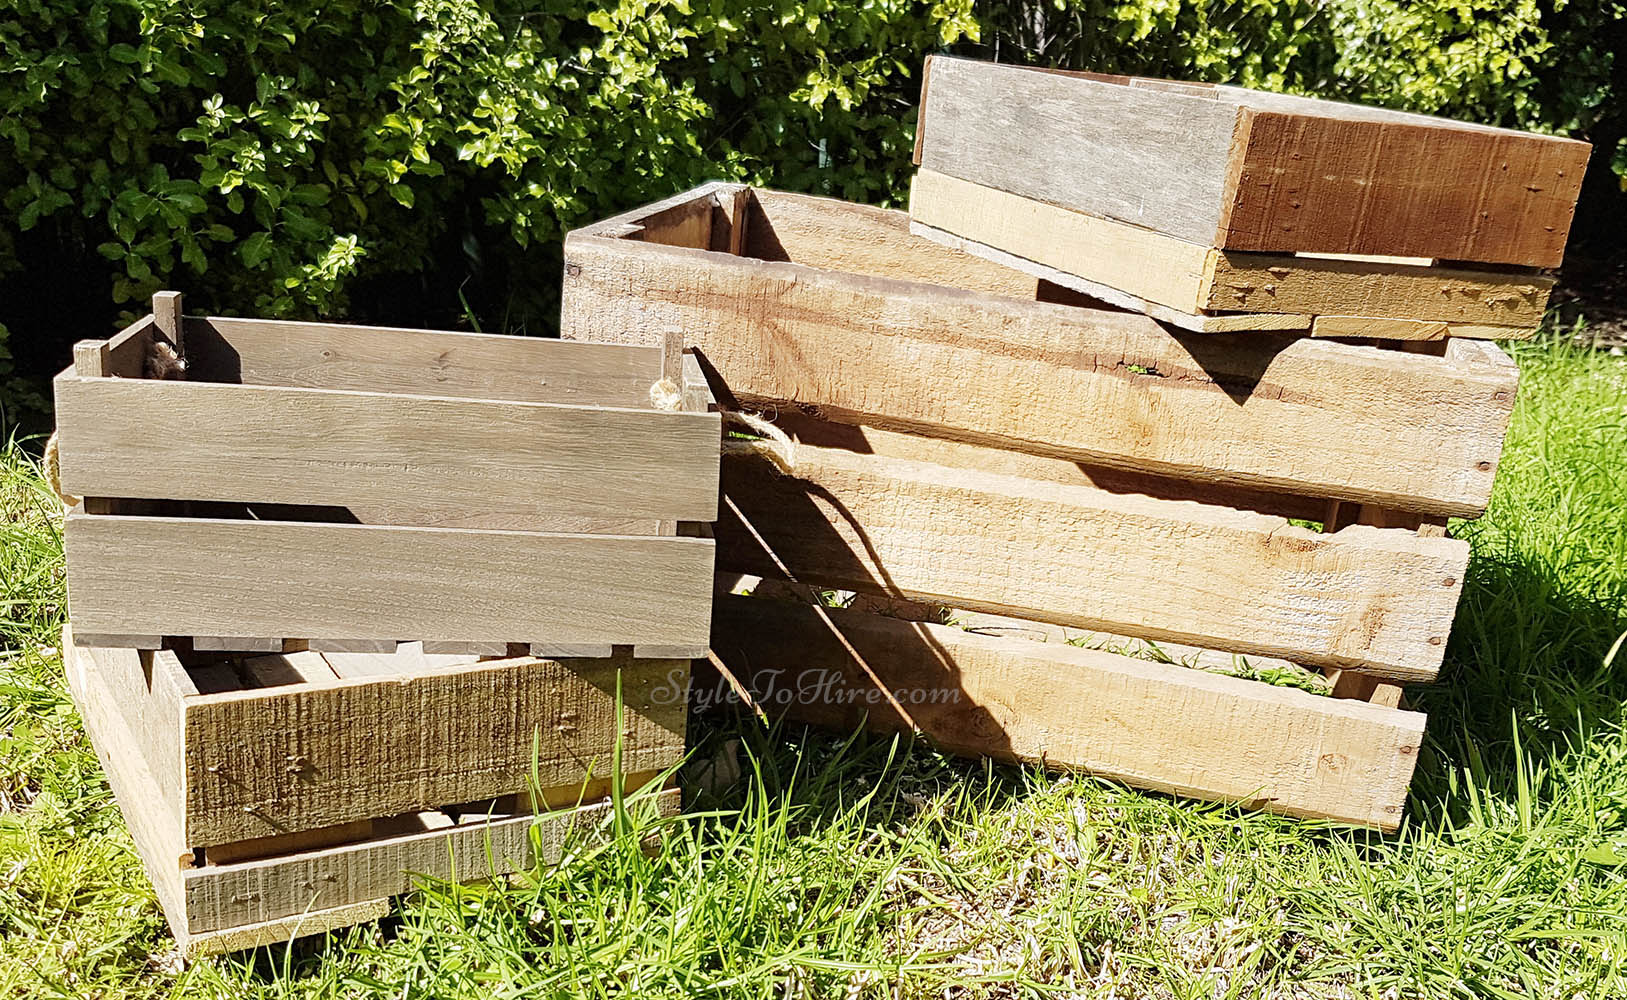 Wooden crates various sizes $5.00 each